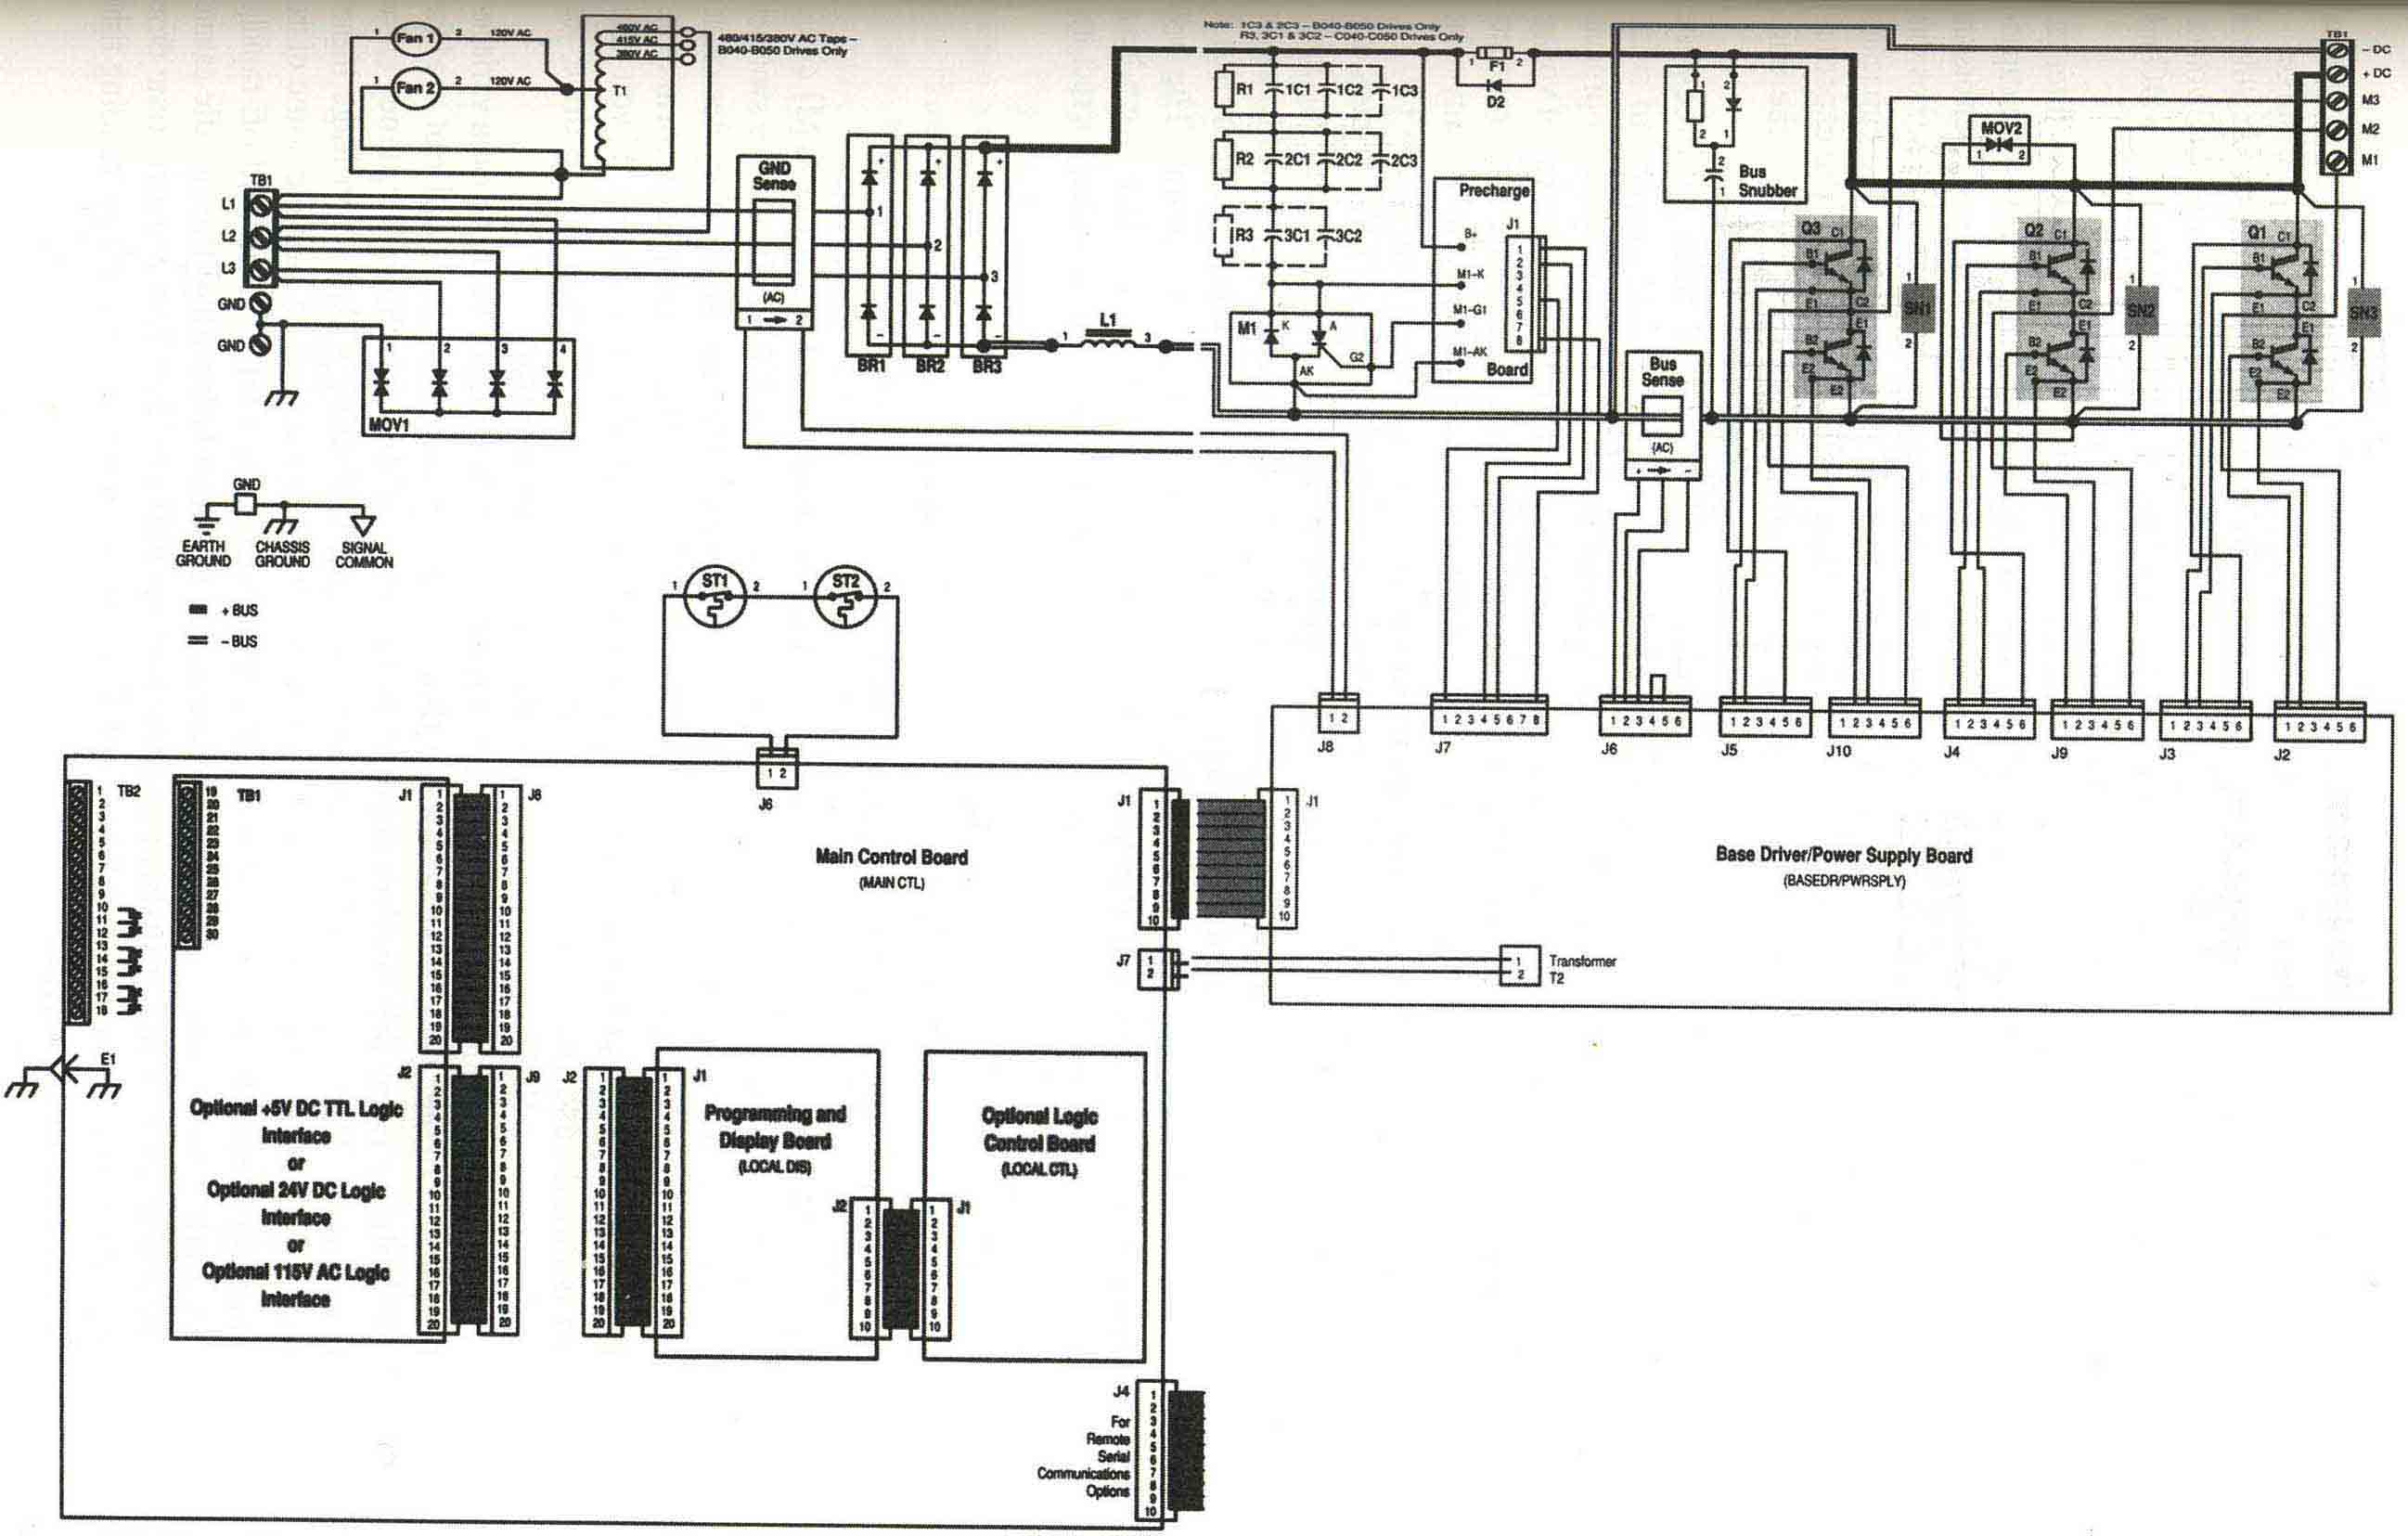 Vfd Wiring Diagram In A Circuit 3 Phase Vfd Wiring Diagram